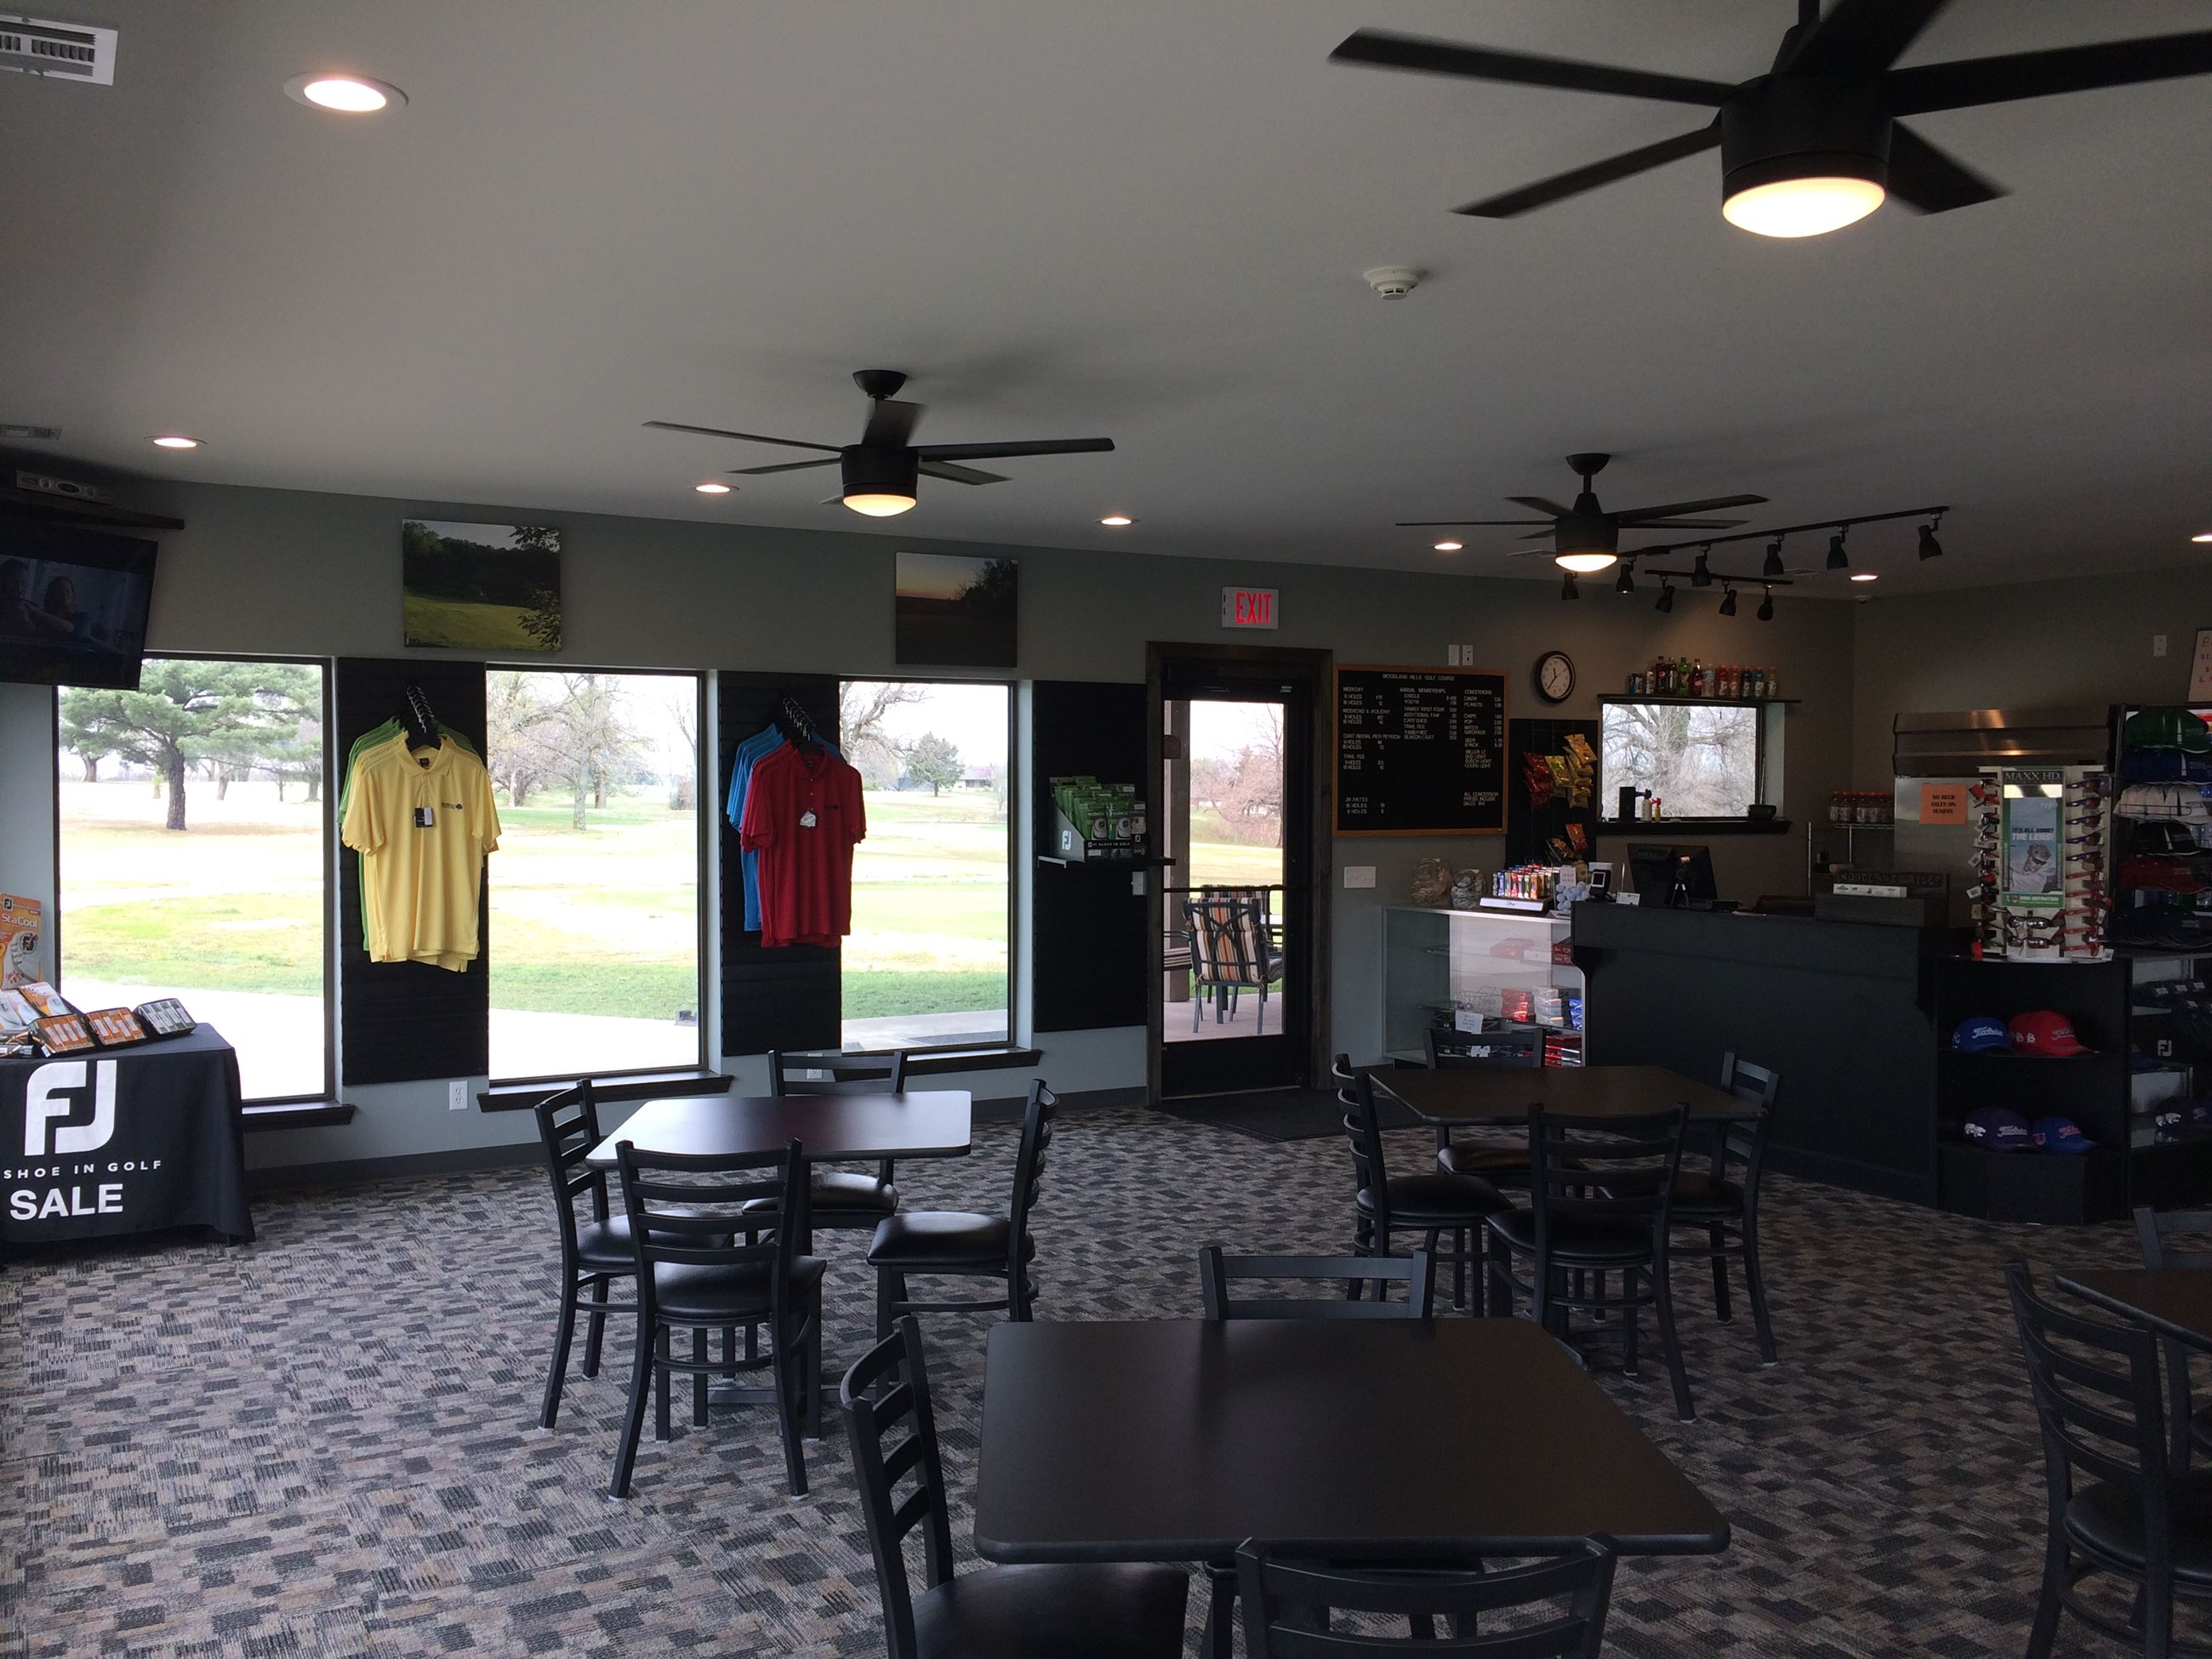 Clubhouse Interior 2, 2017